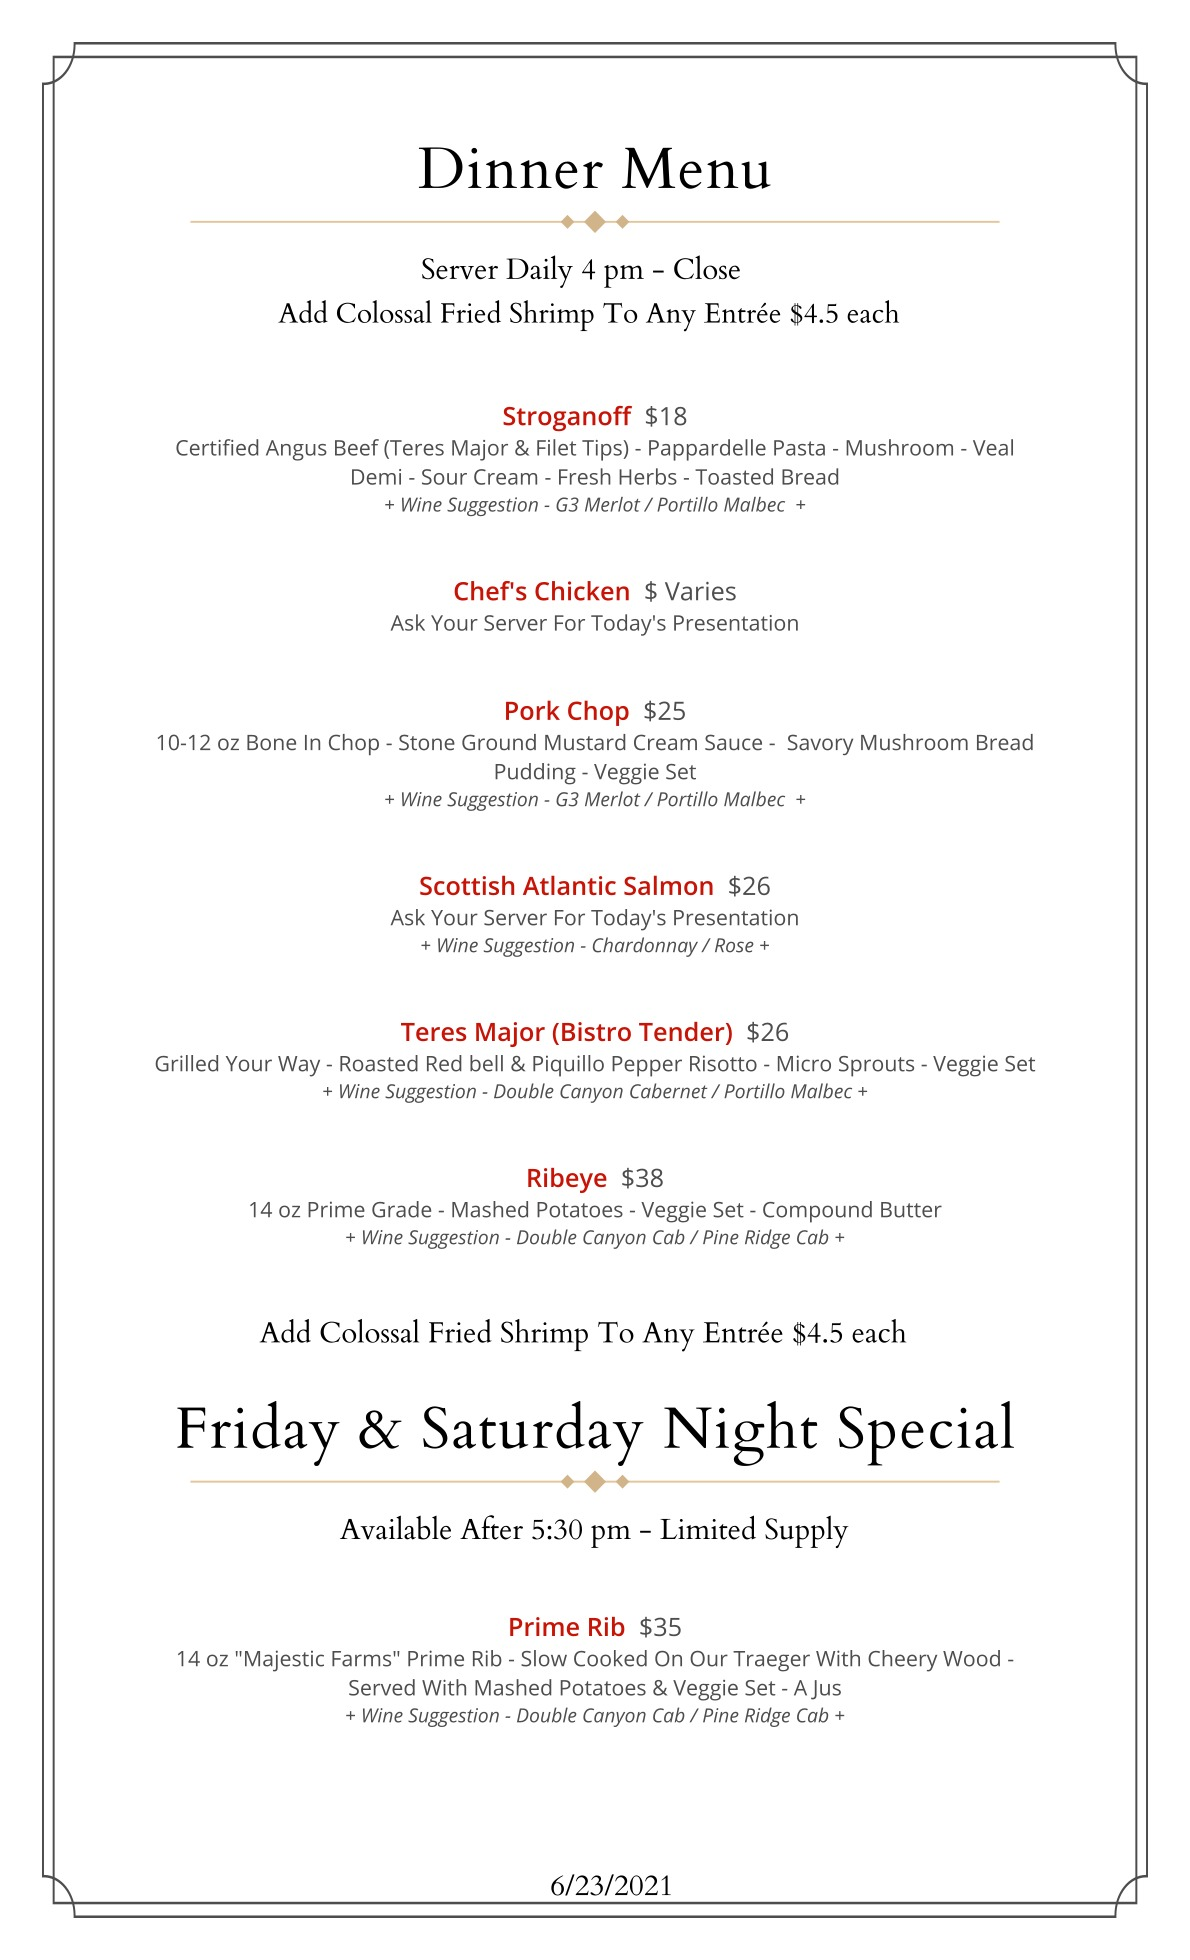 Entrees and Specials